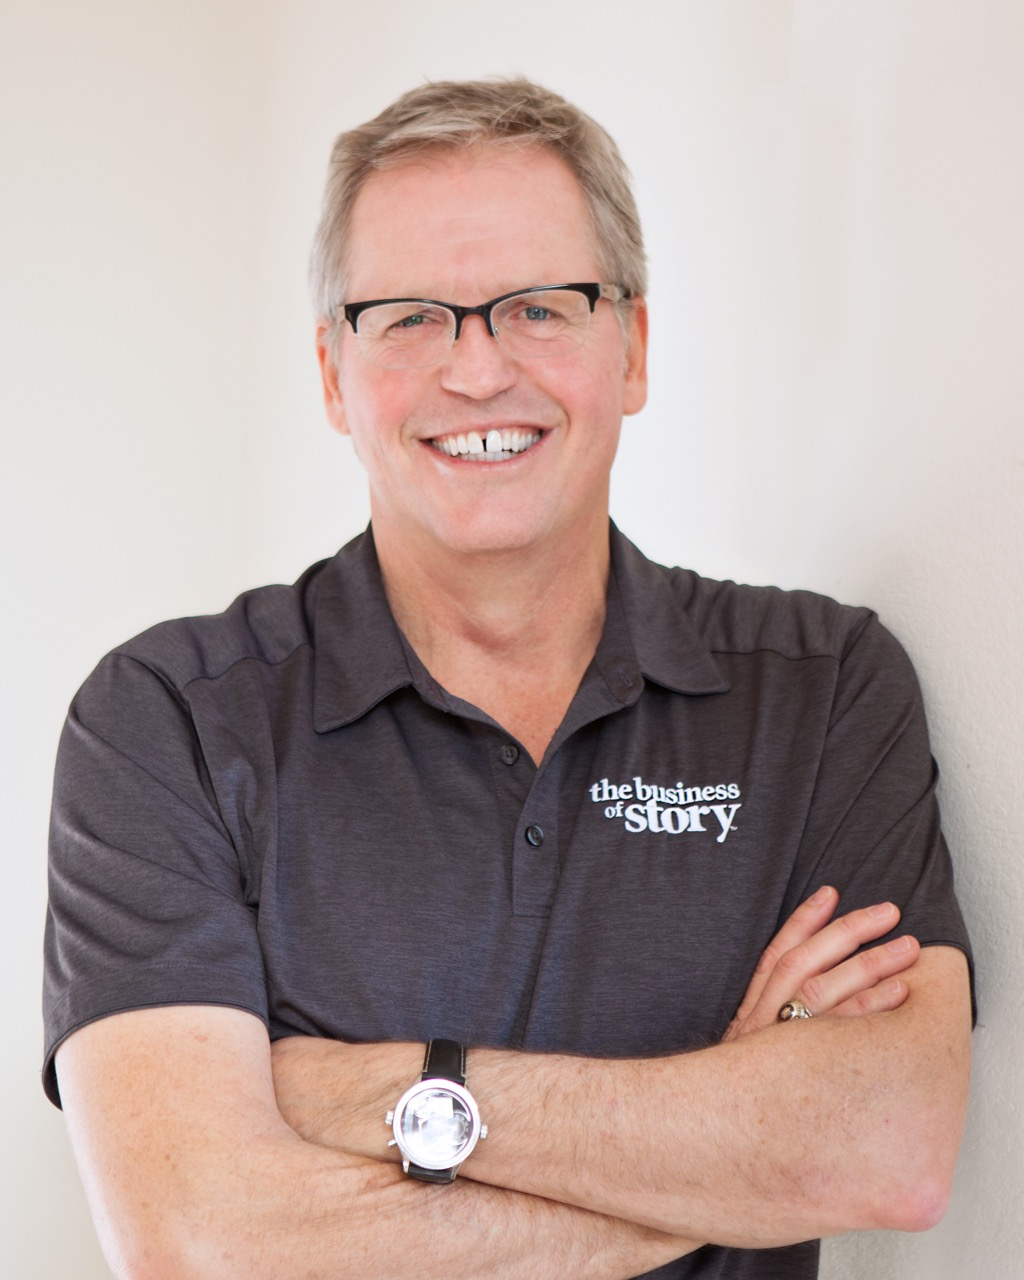 Park Howell has been in advertising for 30+ years, ran his own agency for 20, and has been steeped in business storytelling for the past 15 years.